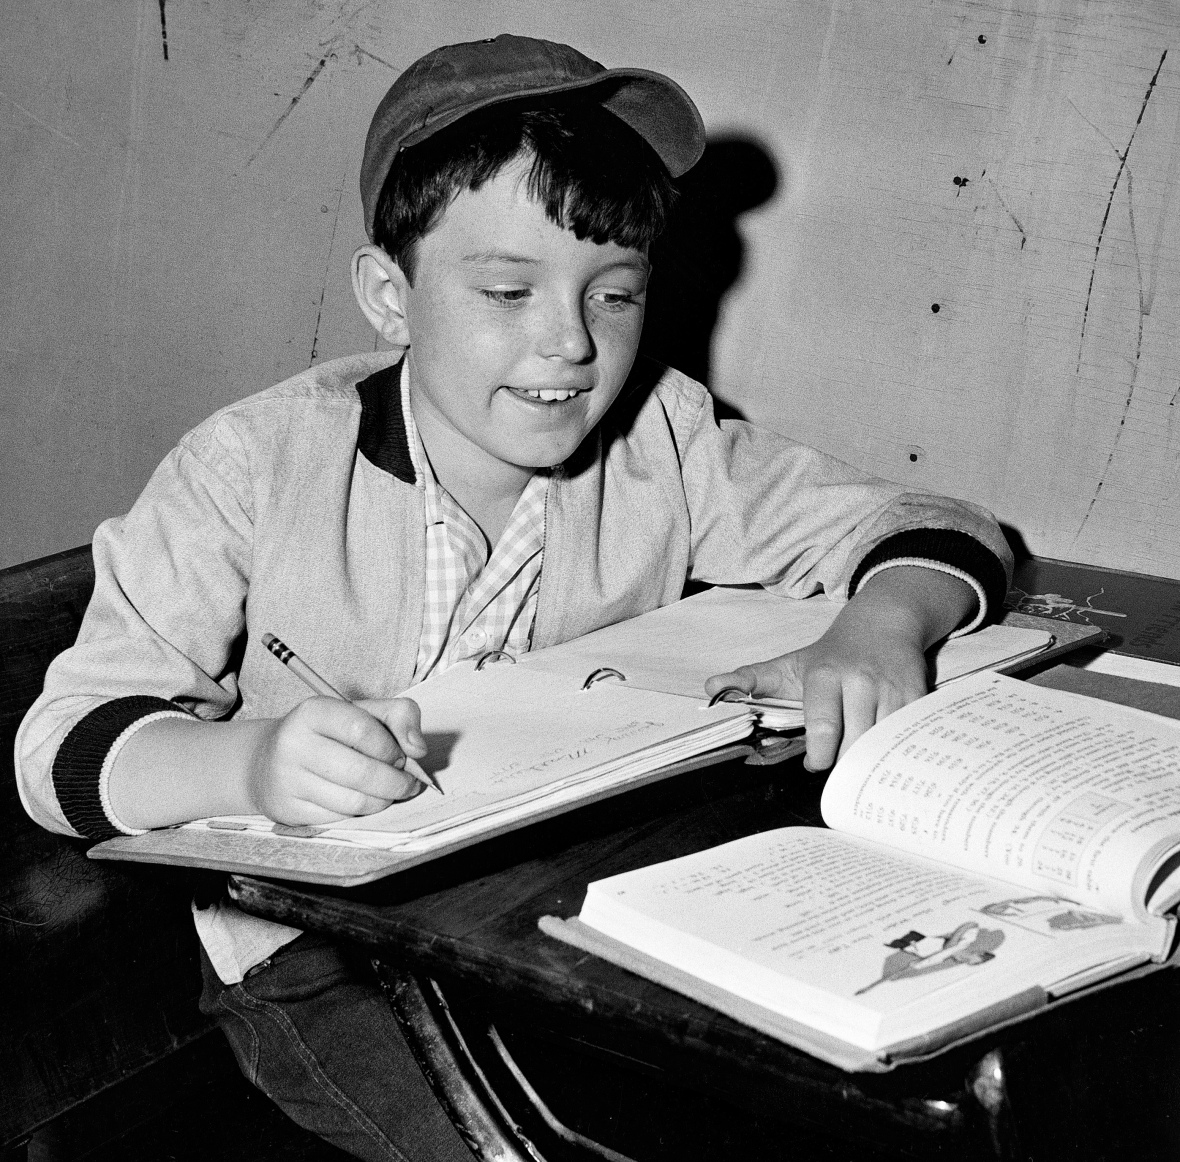 jerry mathers - tutor